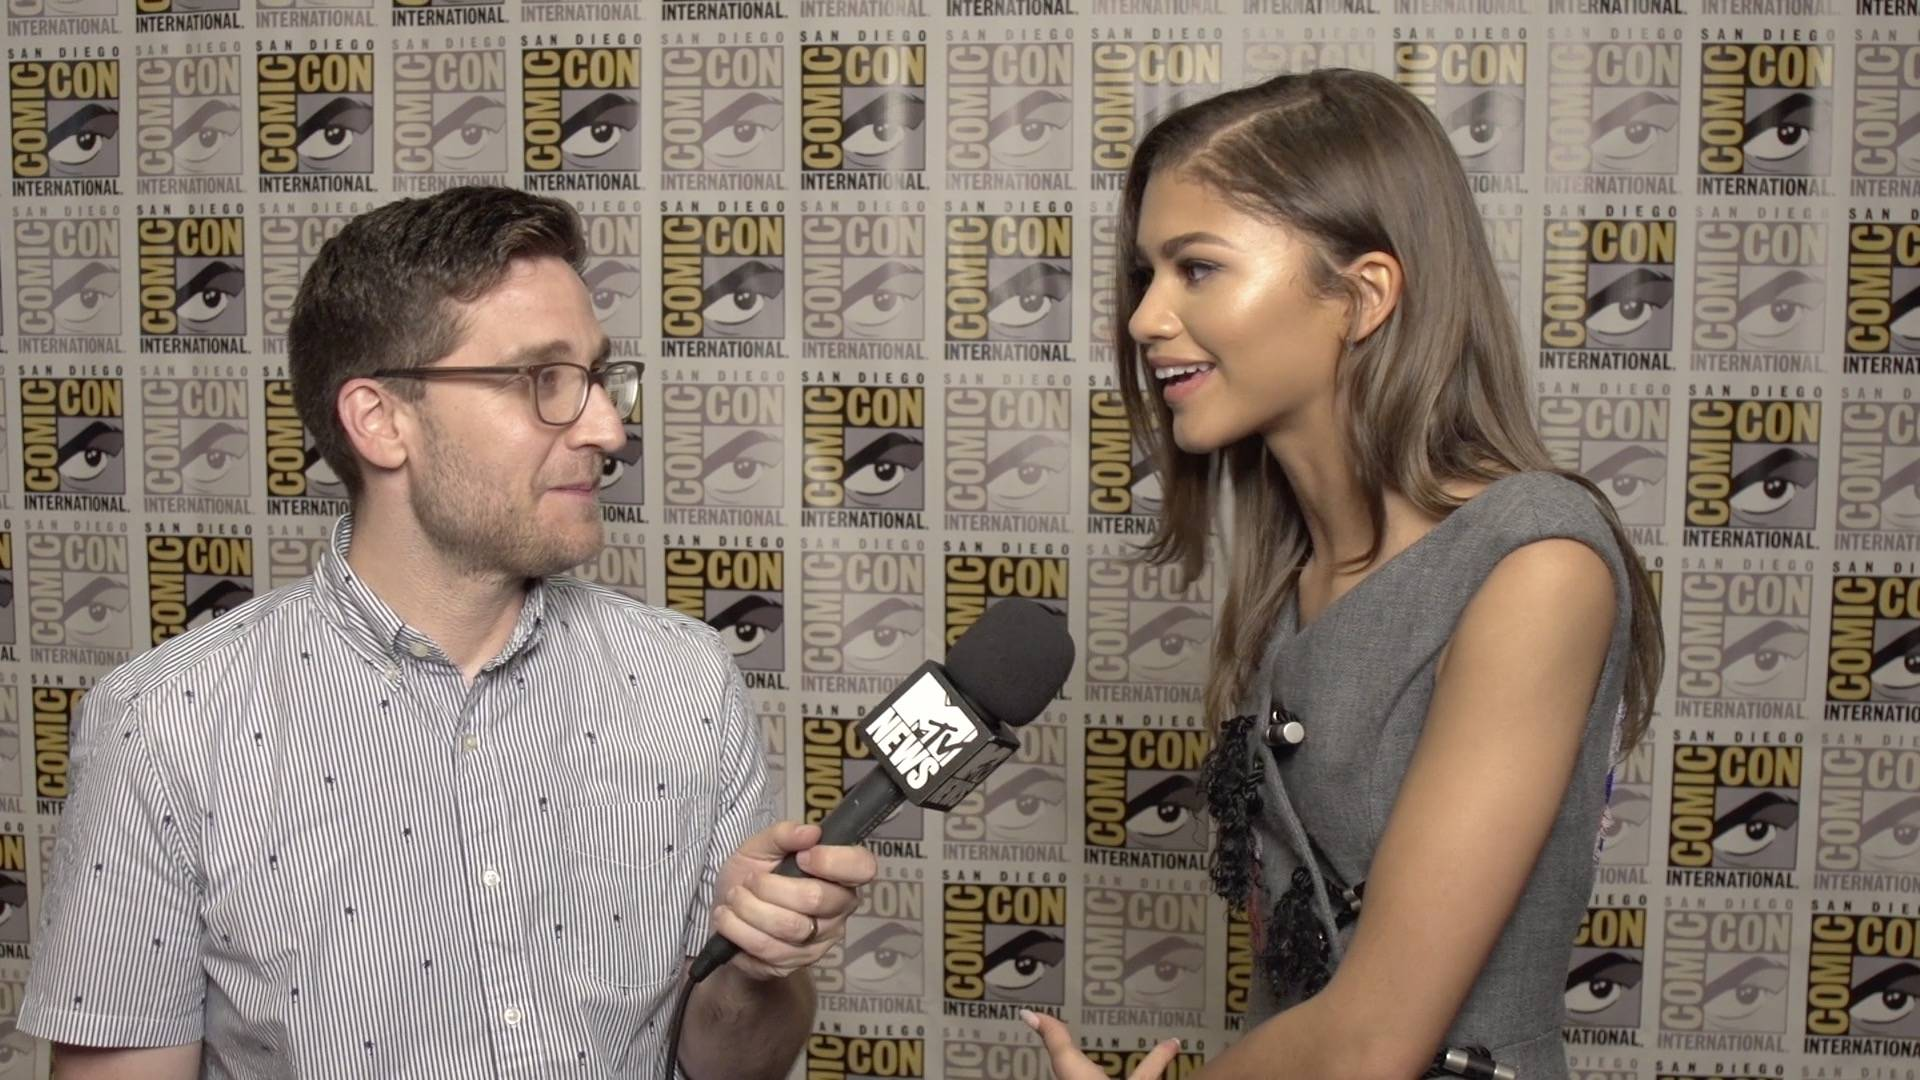 f08fb3df4d34 Zendaya Reacts to 'Spider-Man' Footage at SDCC - MTV News (Video Clip) | VMA